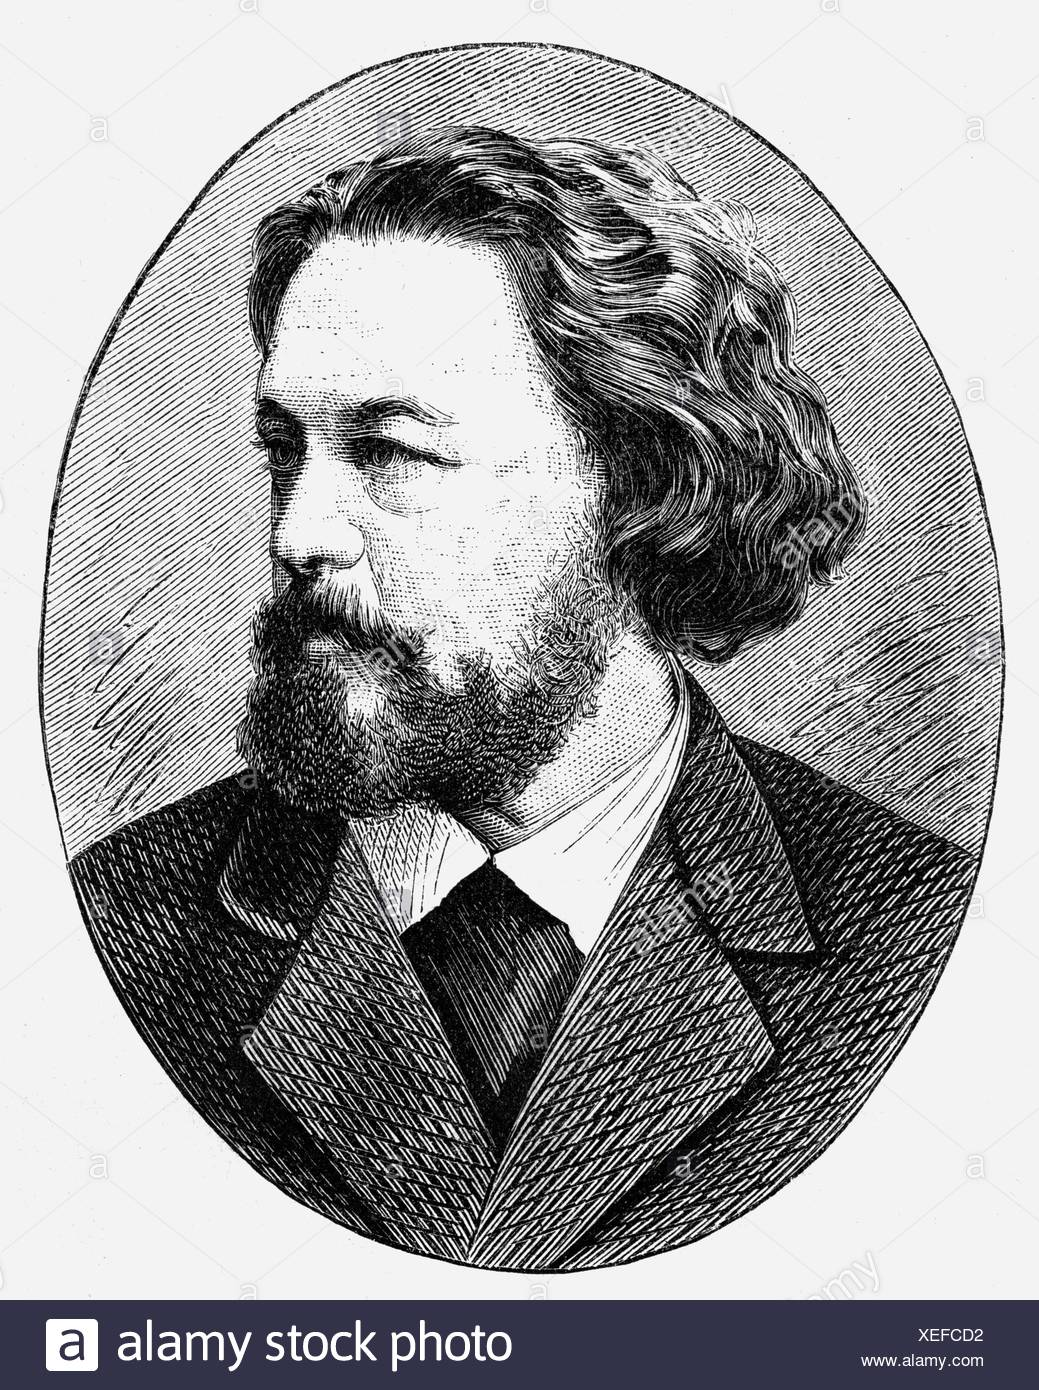 Heyse, Paul, 15.3.1830 - 2.4.1914, German author/writer, portrait, wood engraving, 19th century, Additional-Rights-Clearances-NA - Stock Image